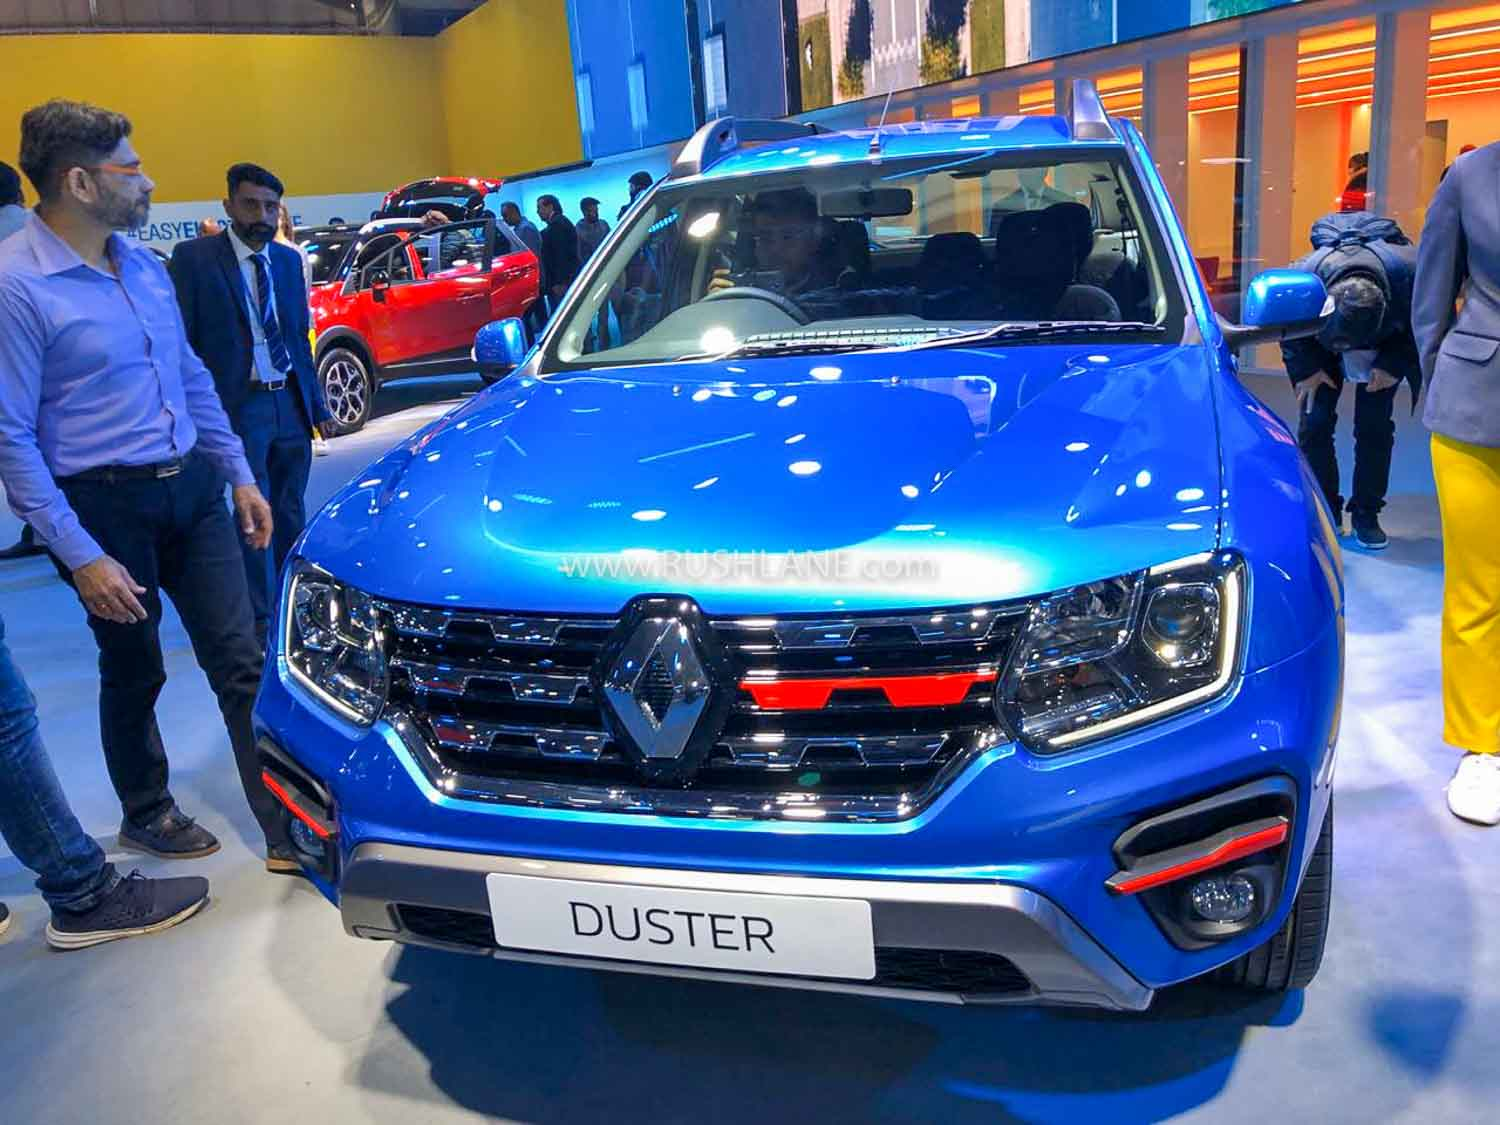 2020 Renault Duster BS6 AMT 1.3L Turbo at Auto Expo